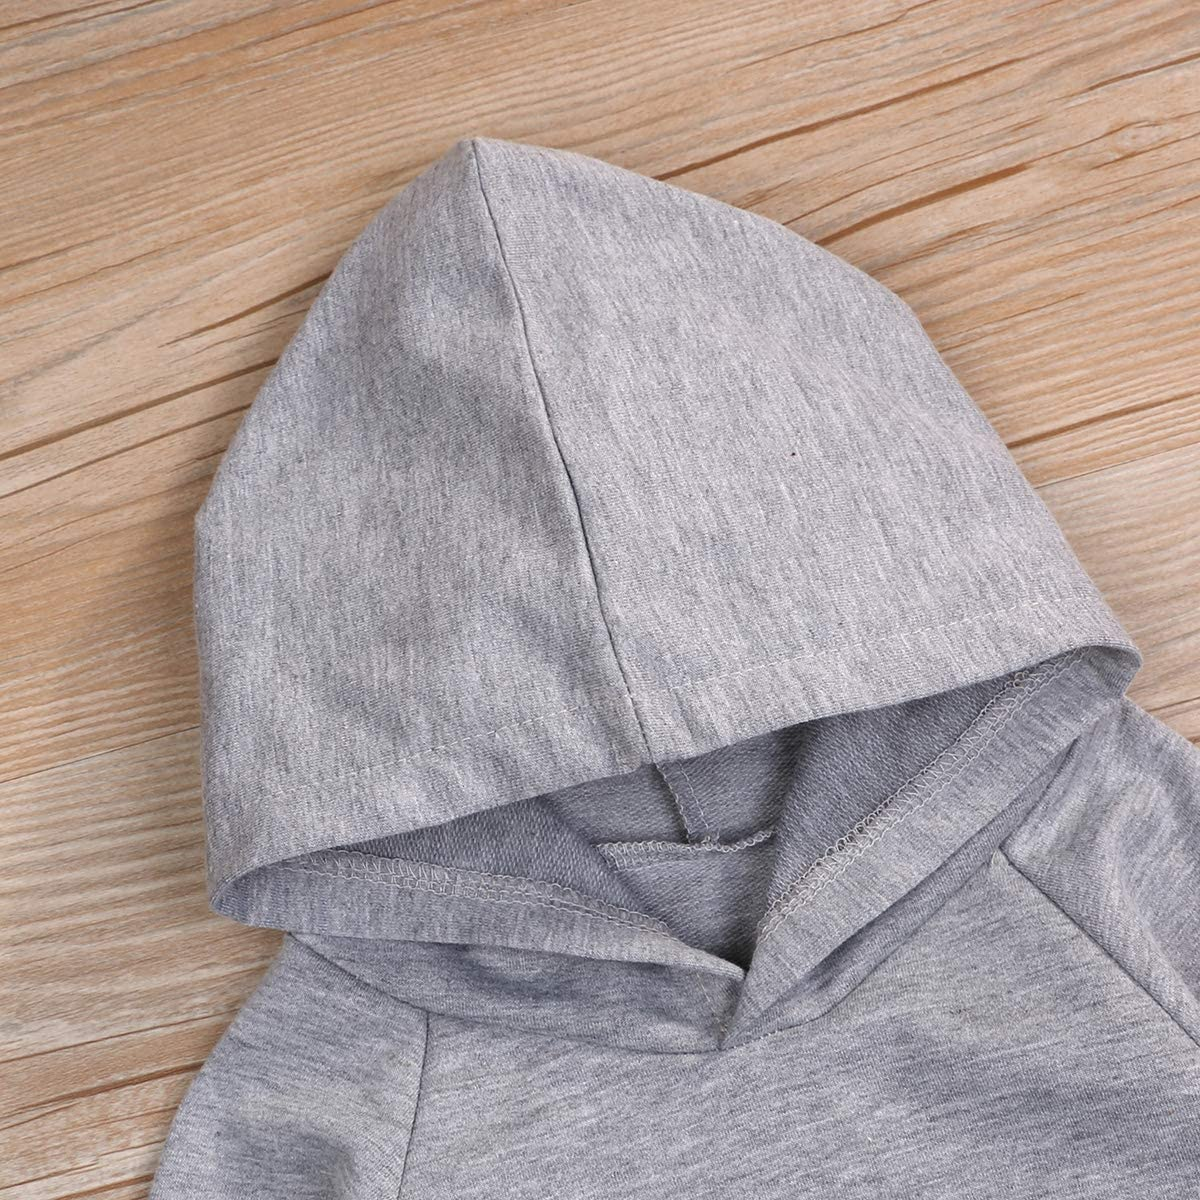 Unisex Baby Autumn Winter Hooded Wild Child T-Shirt Infant Boys Girls Cotton Hoodie Pullover Top